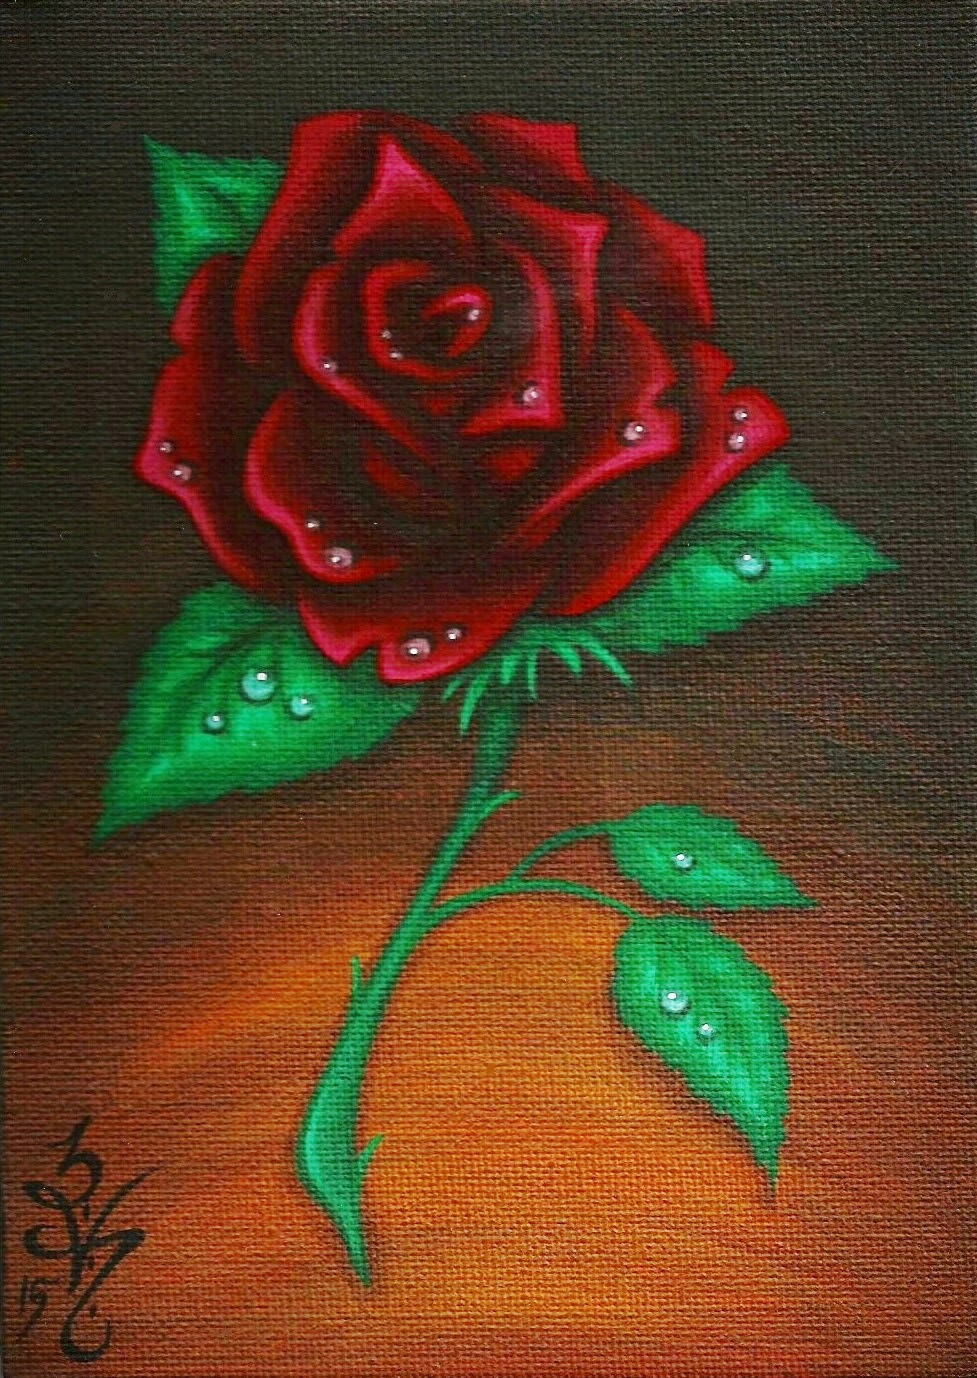 https://www.etsy.com/listing/221082935/original-gothic-fantasy-red-rose-flower?ref=shop_home_active_1